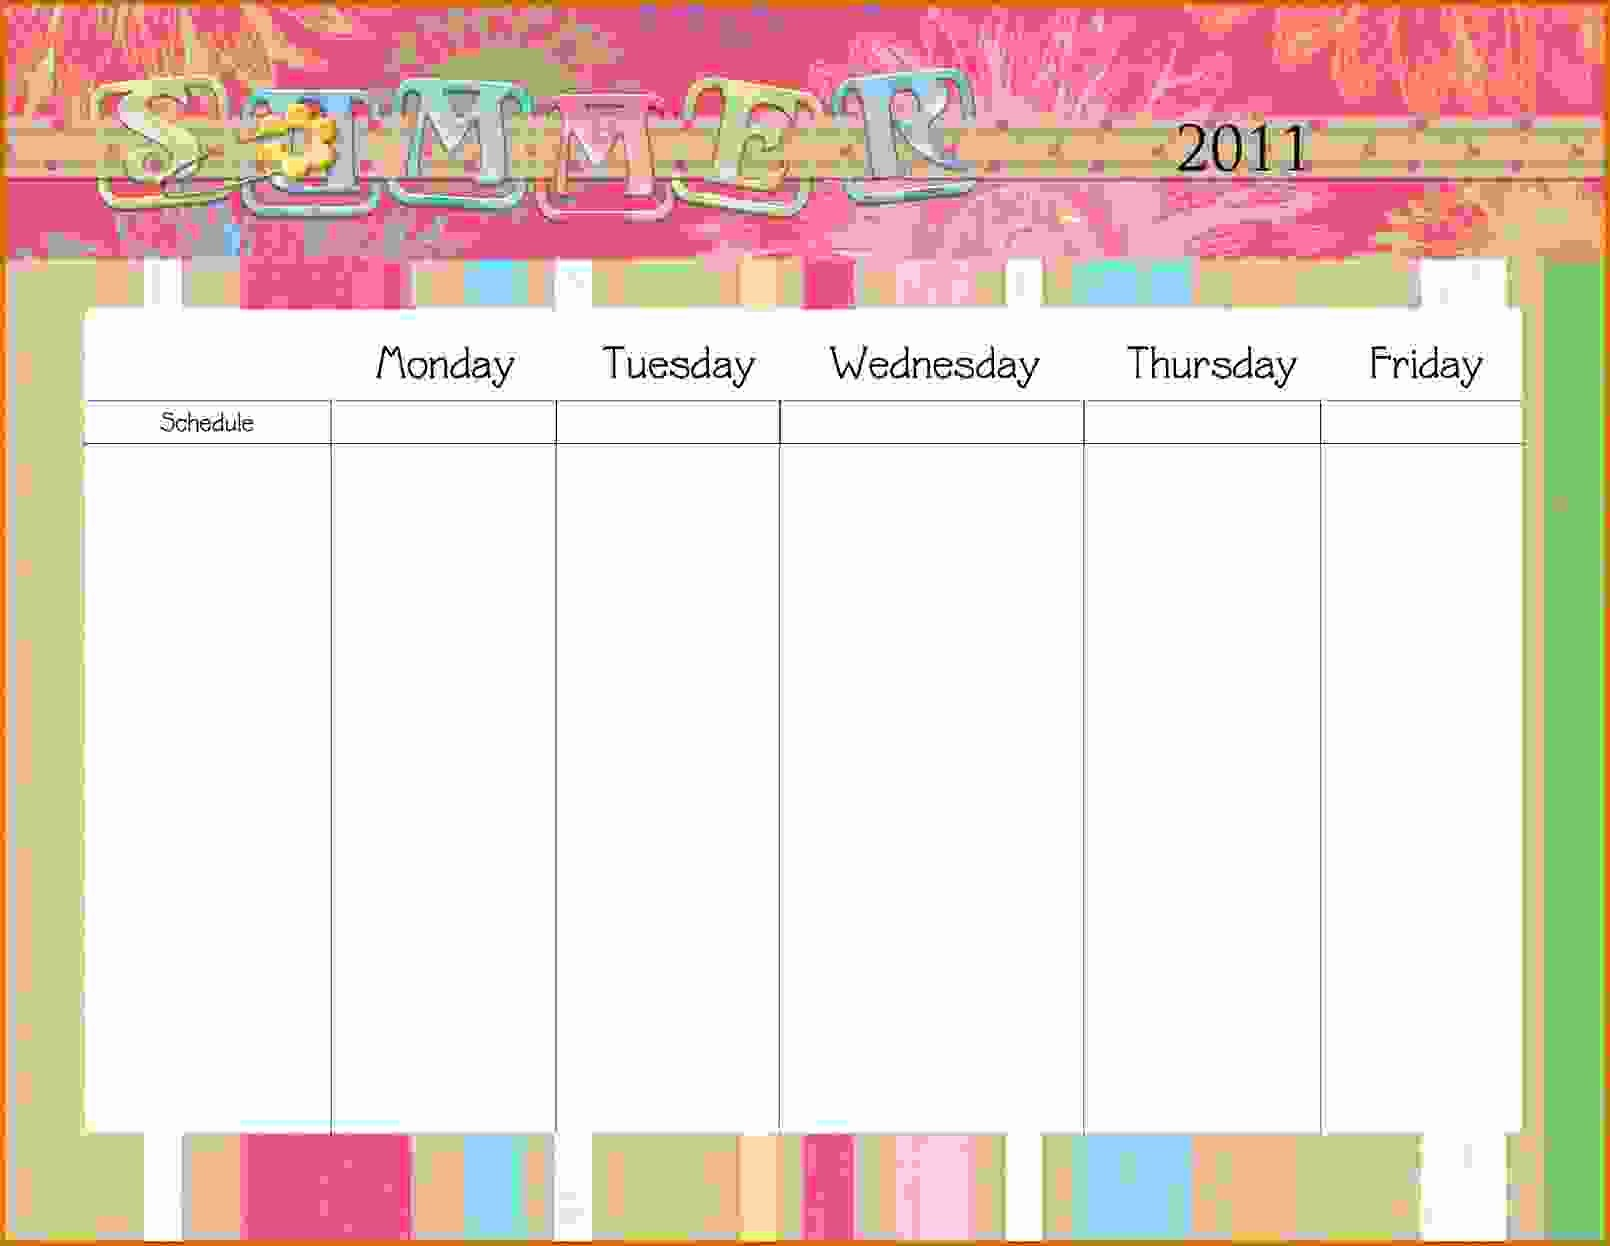 Weekly Calendar Monday Through Friday New 11 Monday Through Friday Printable Calendar